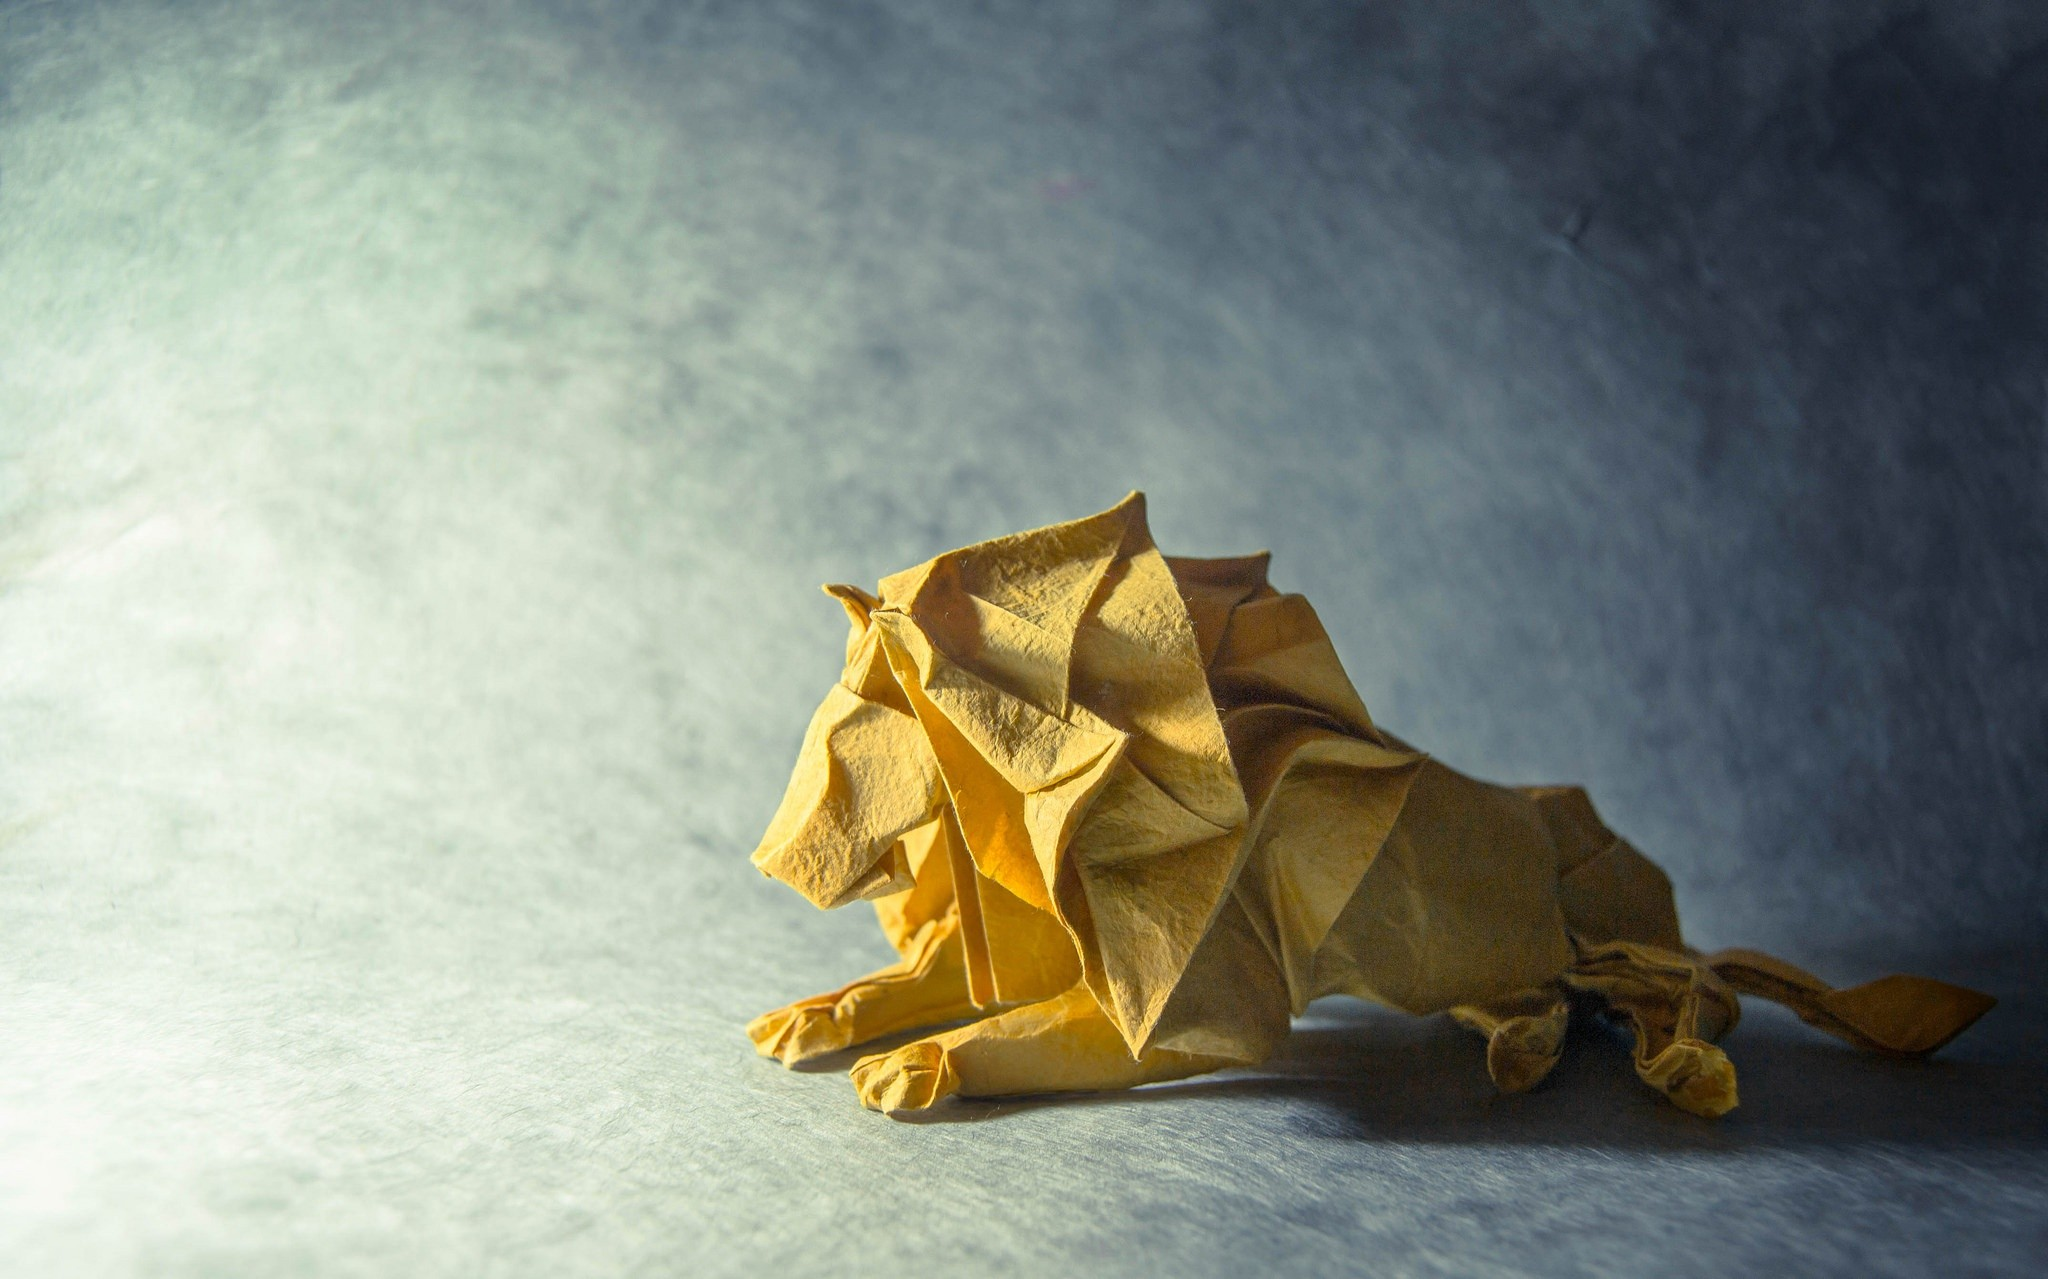 Origami Paper Lion Animals Wallpaper And Background - Origami Wallpaper Hd , HD Wallpaper & Backgrounds